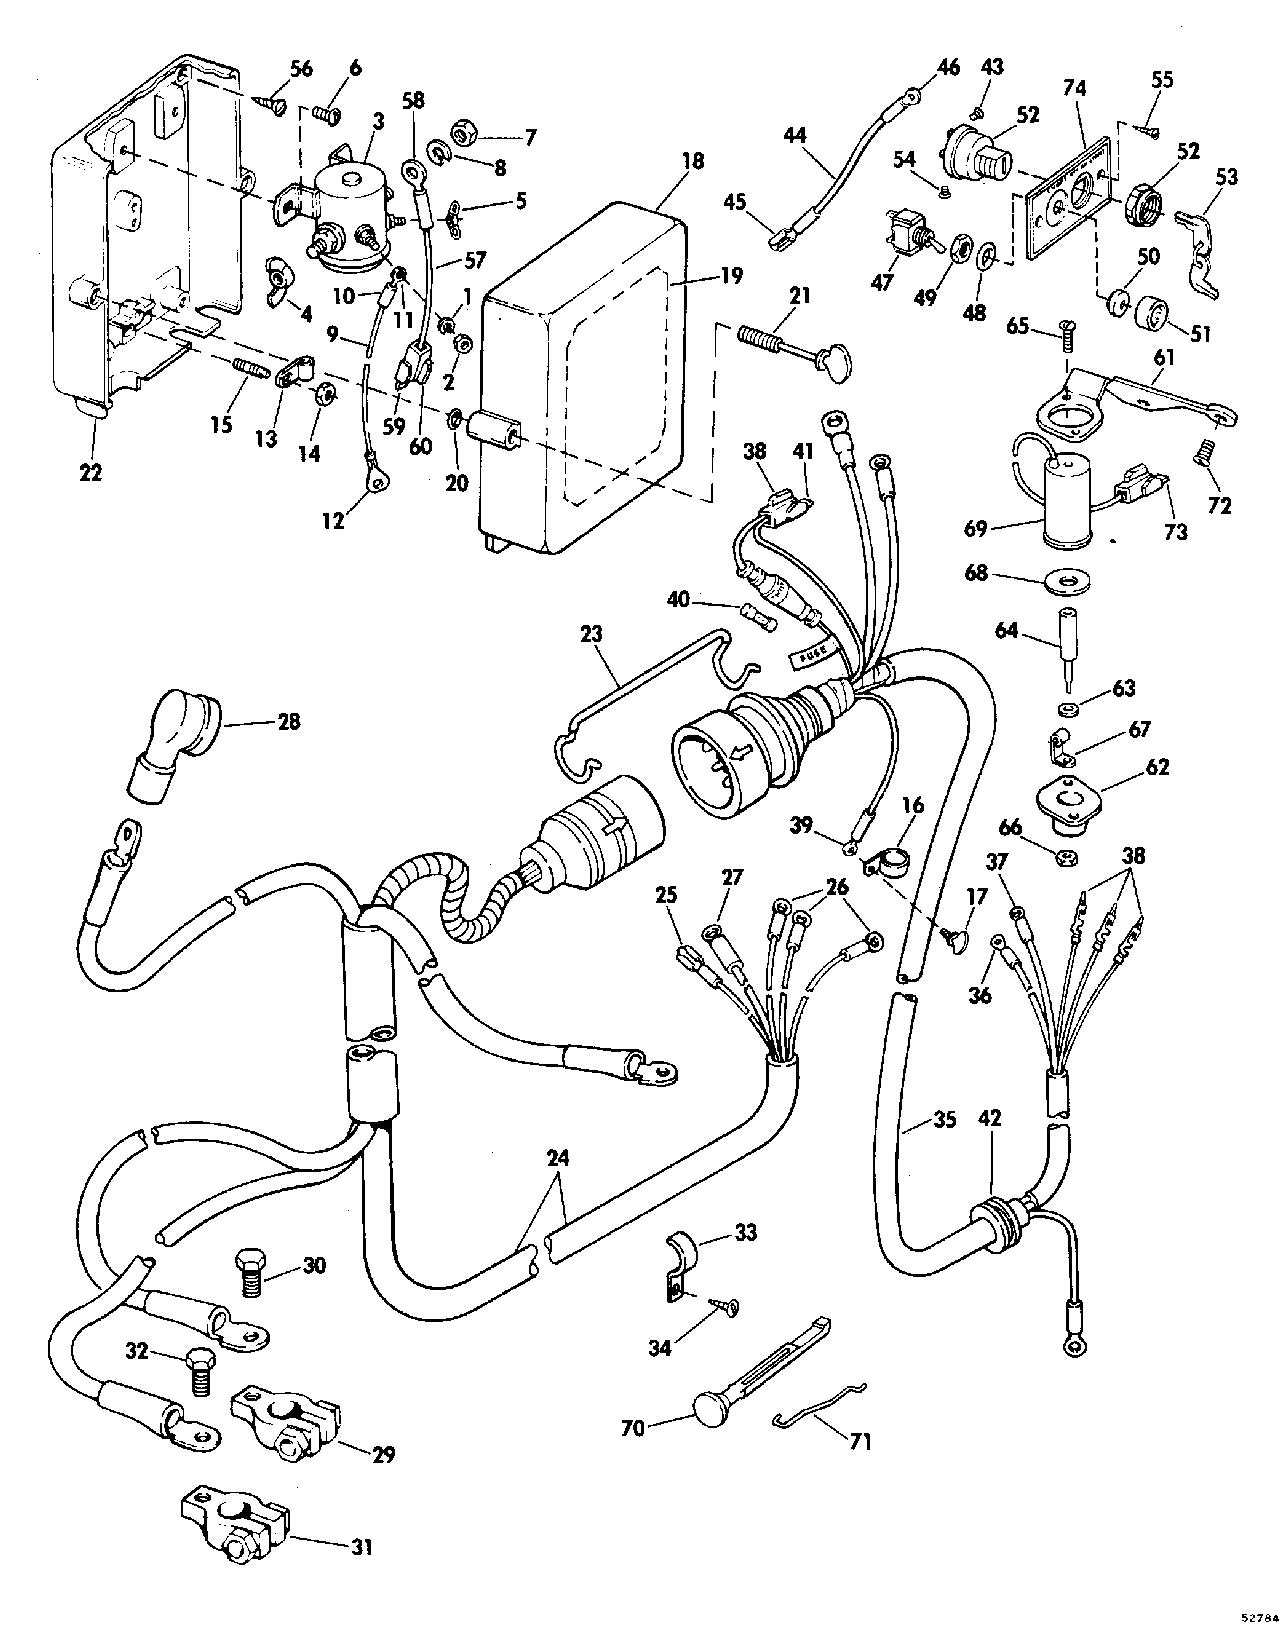 1976 70 hp johnson wiring diagram